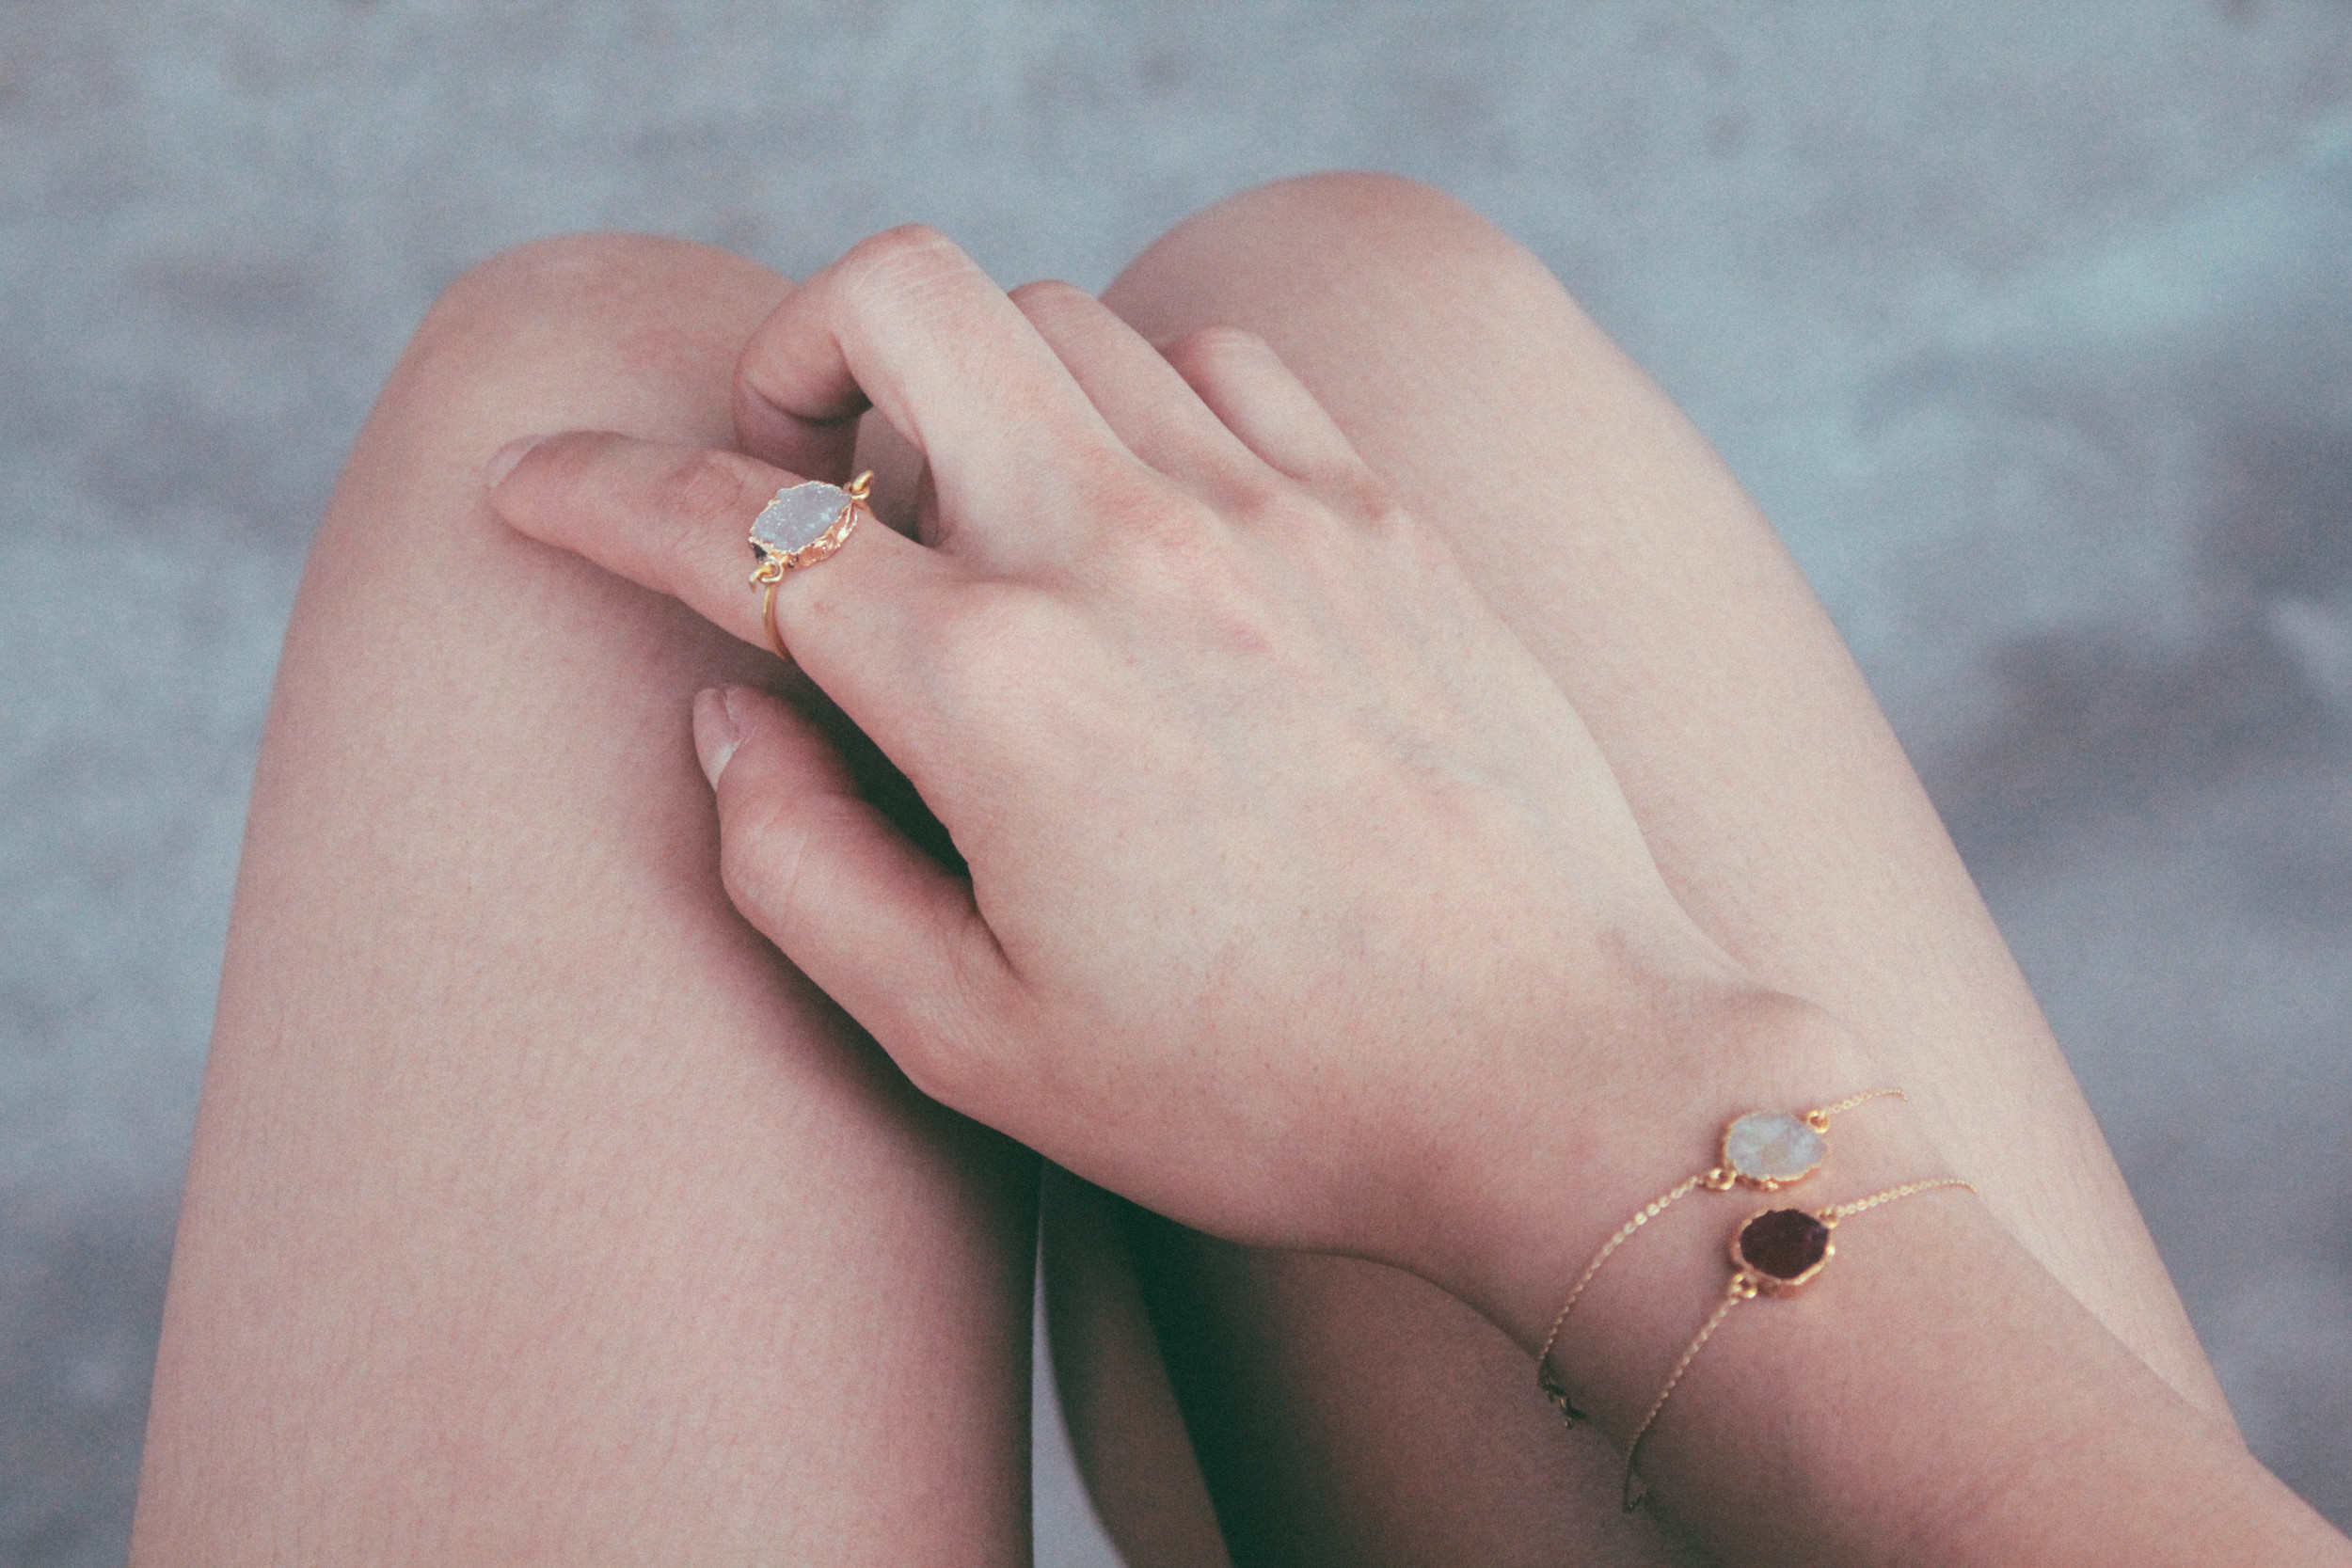 Different mineral rings and bracelets in 24ct Goldplated Silver